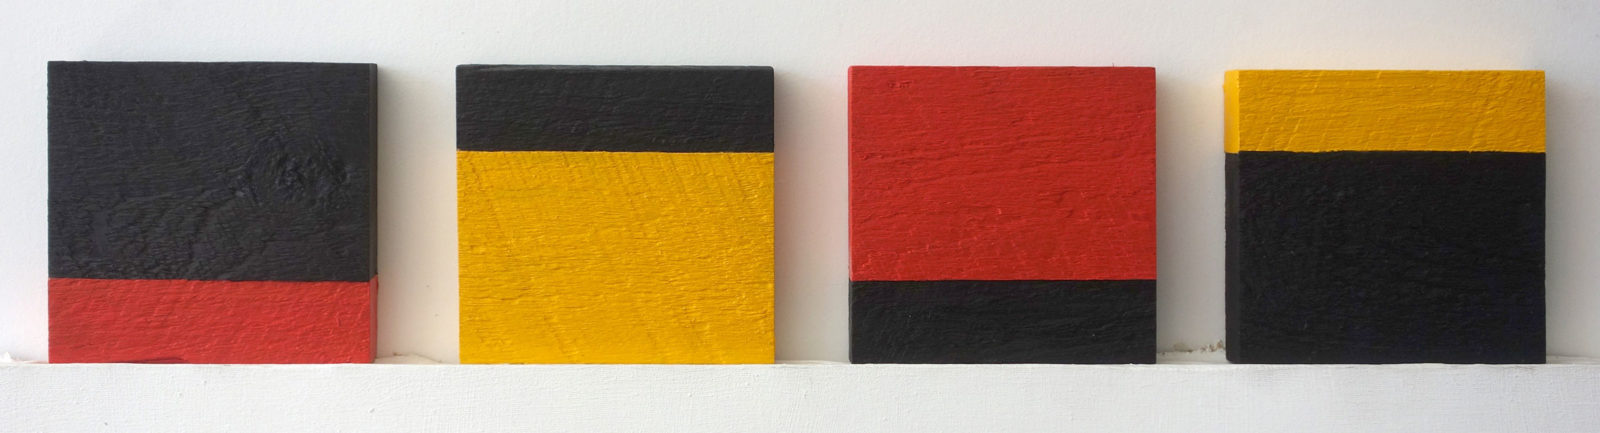 "Four ""Untitled"" entries to Rochester Contemporary 6x6 Show, oil on wood, Paul Dodd 2015"